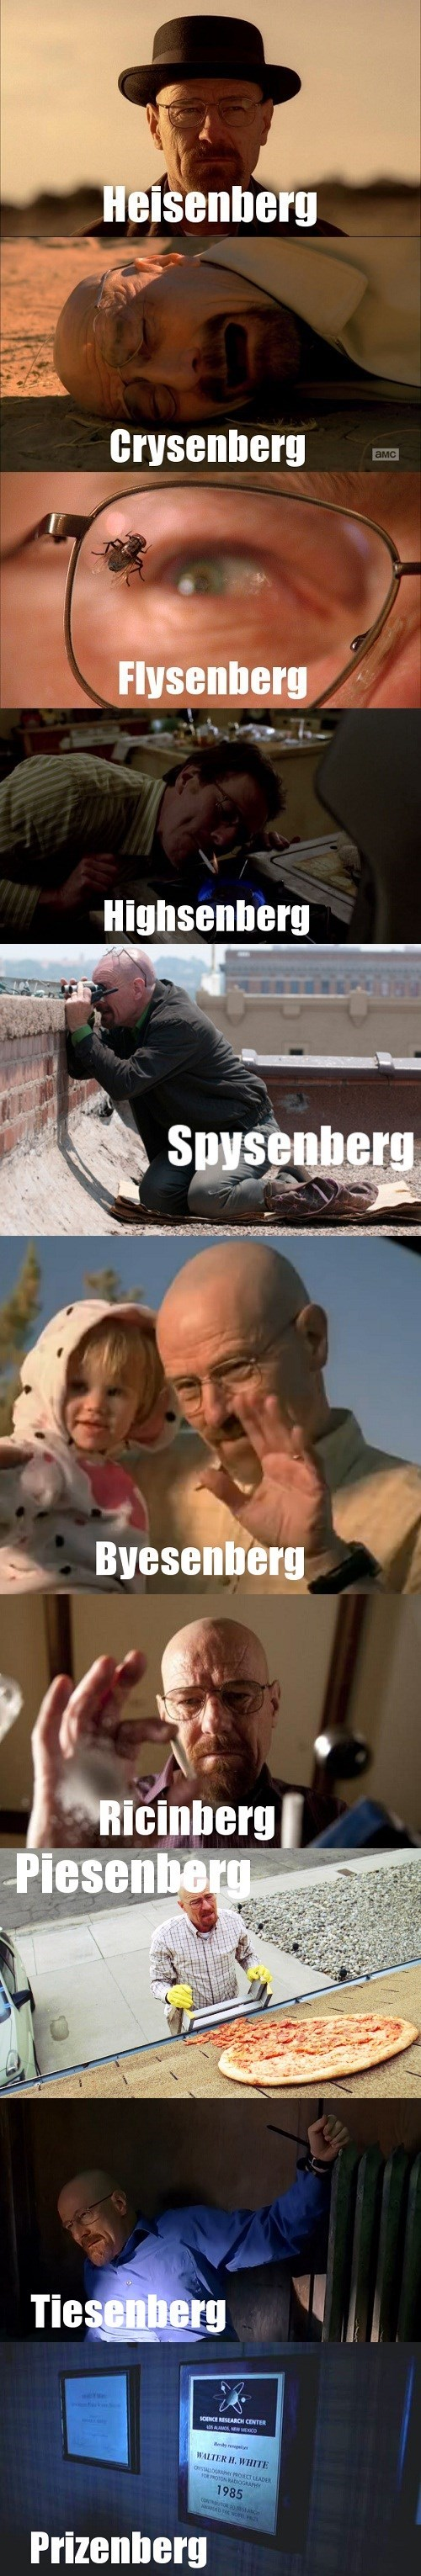 breaking bad heisenberg tv shows - 7819746304